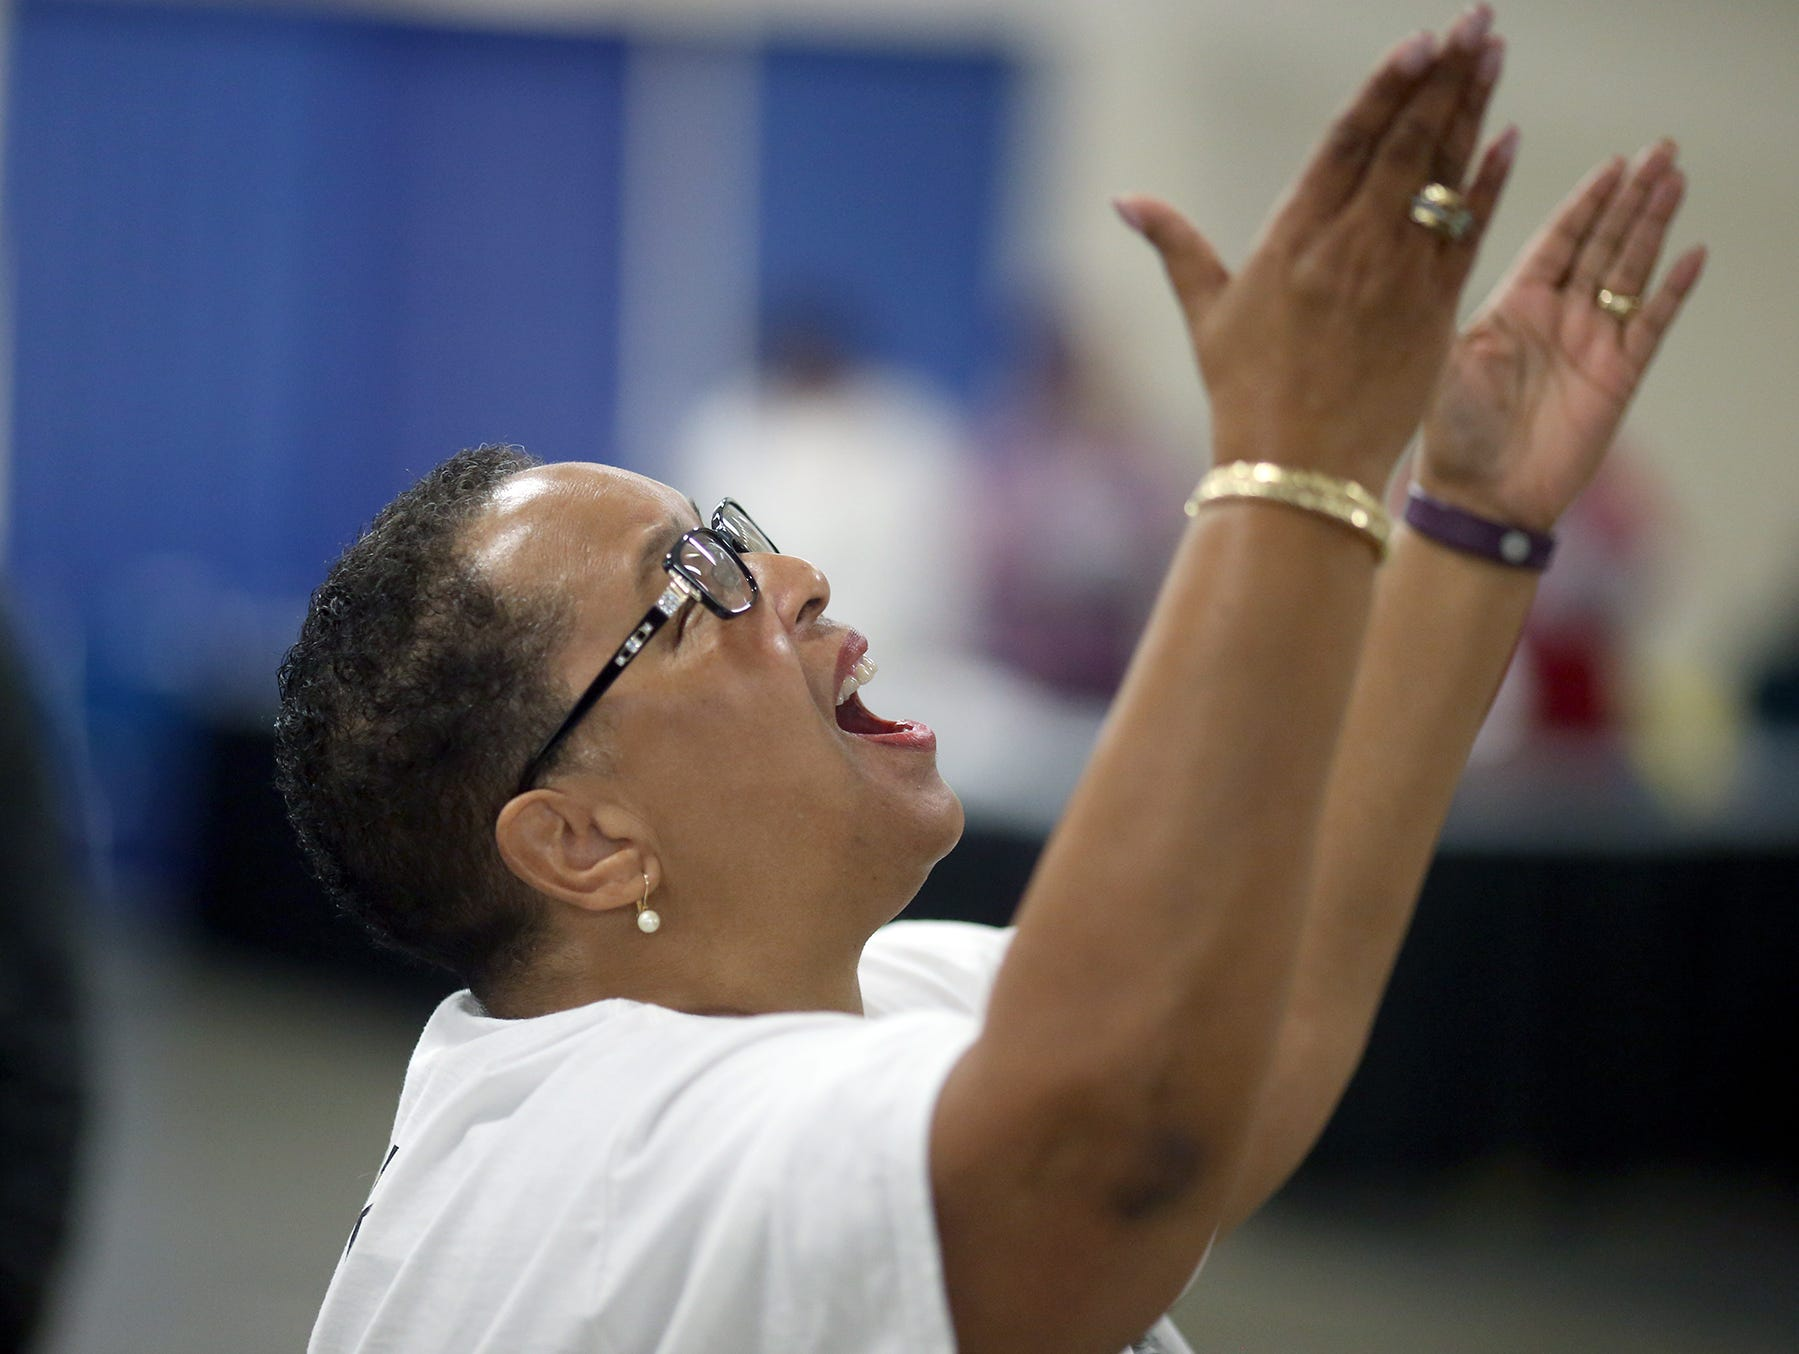 MLK Community Choir director Pam Farrior leads the choir at the 25th annual Reverend Dr. Martin Luther King, Jr. celebration was held at PresidentsÕ Hall at the Kitsap County Fairgrounds on Monday, January, 21 , 2019.